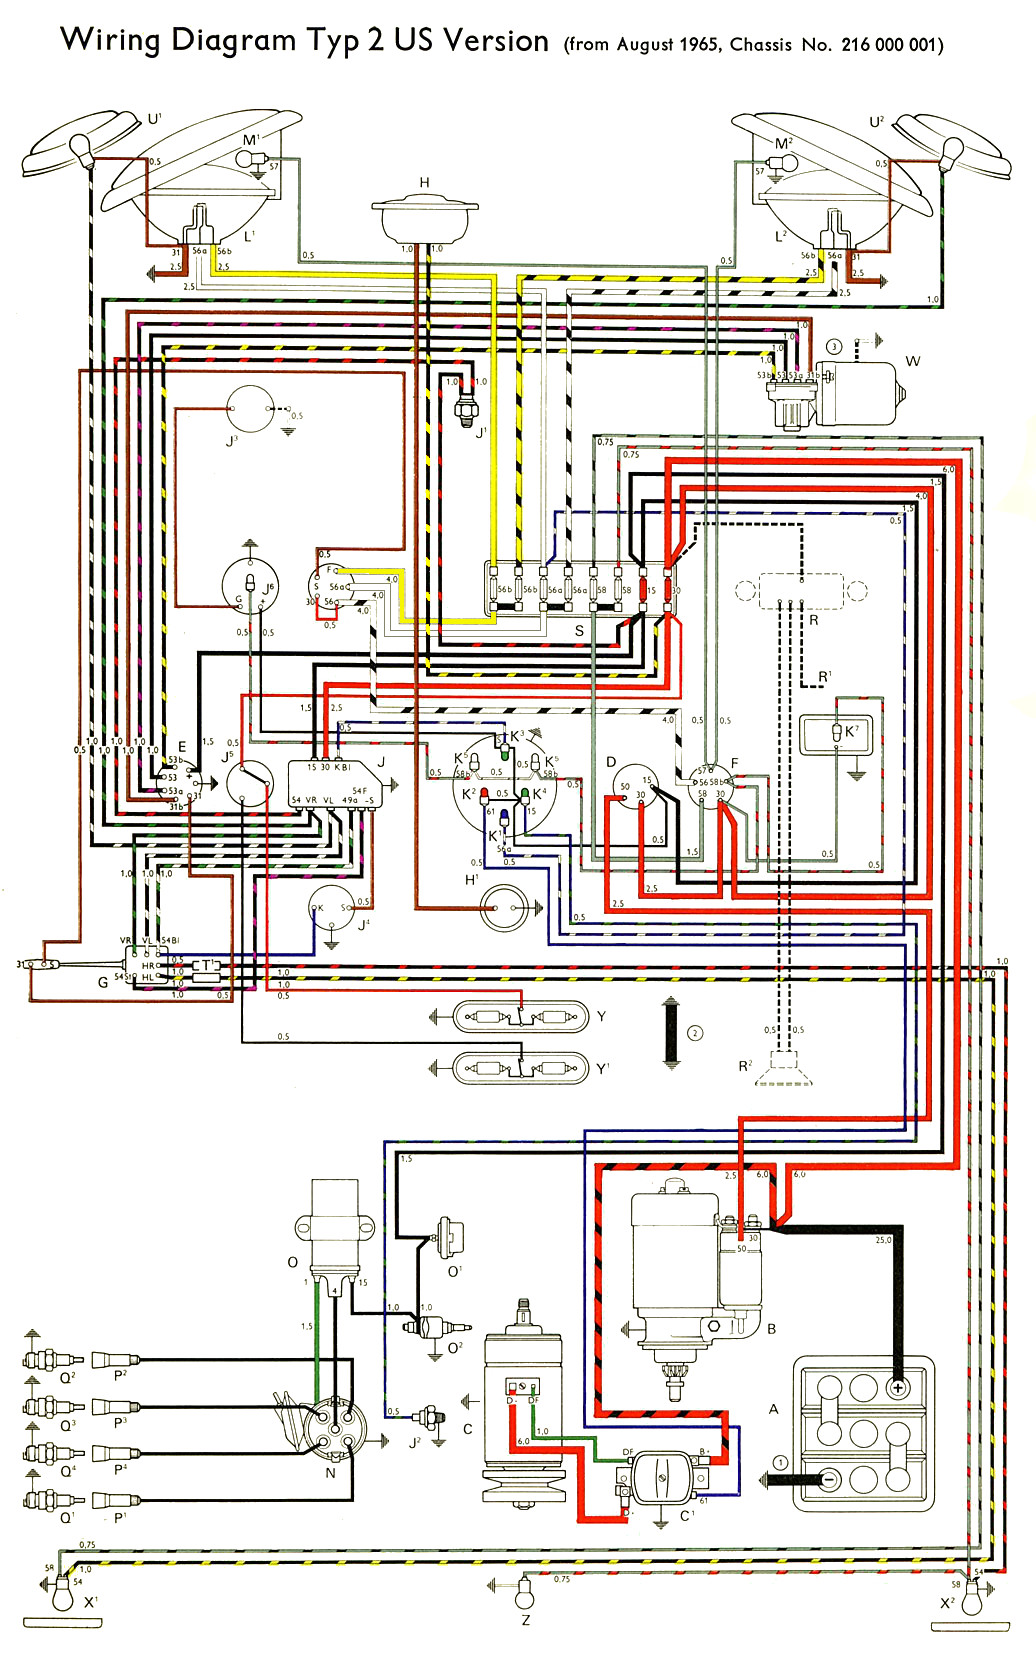 bus_66_USA 4g91 wiring diagram 4g93 wiring diagram pdf \u2022 indy500 co blodgett mark v 111 wiring diagram at alyssarenee.co